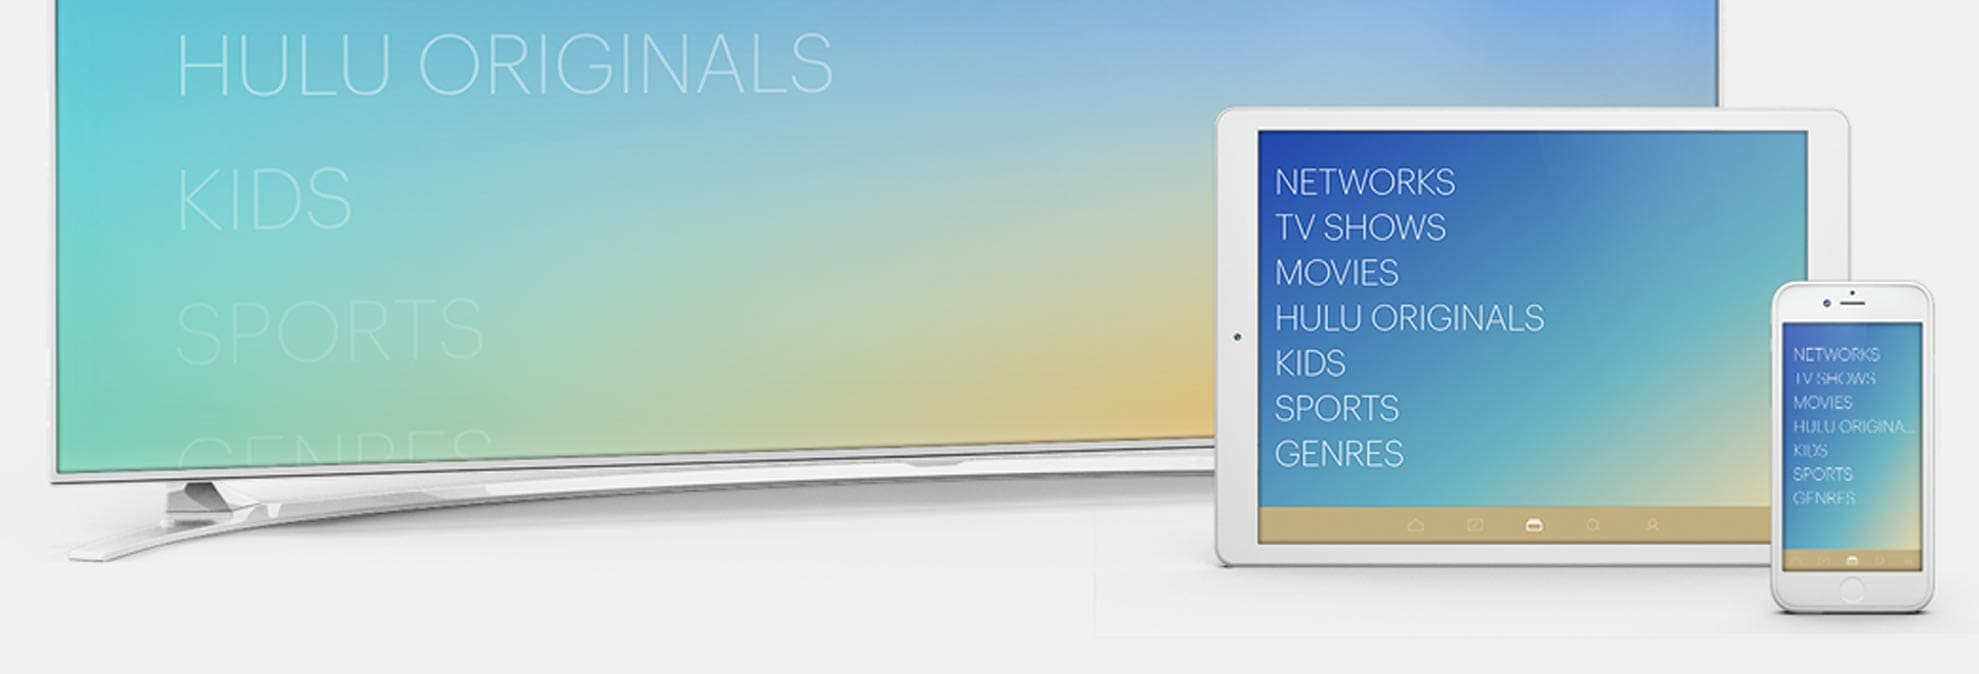 Hands-on With Hulu With Live TV, the Latest Online Service for Cord-Cutters